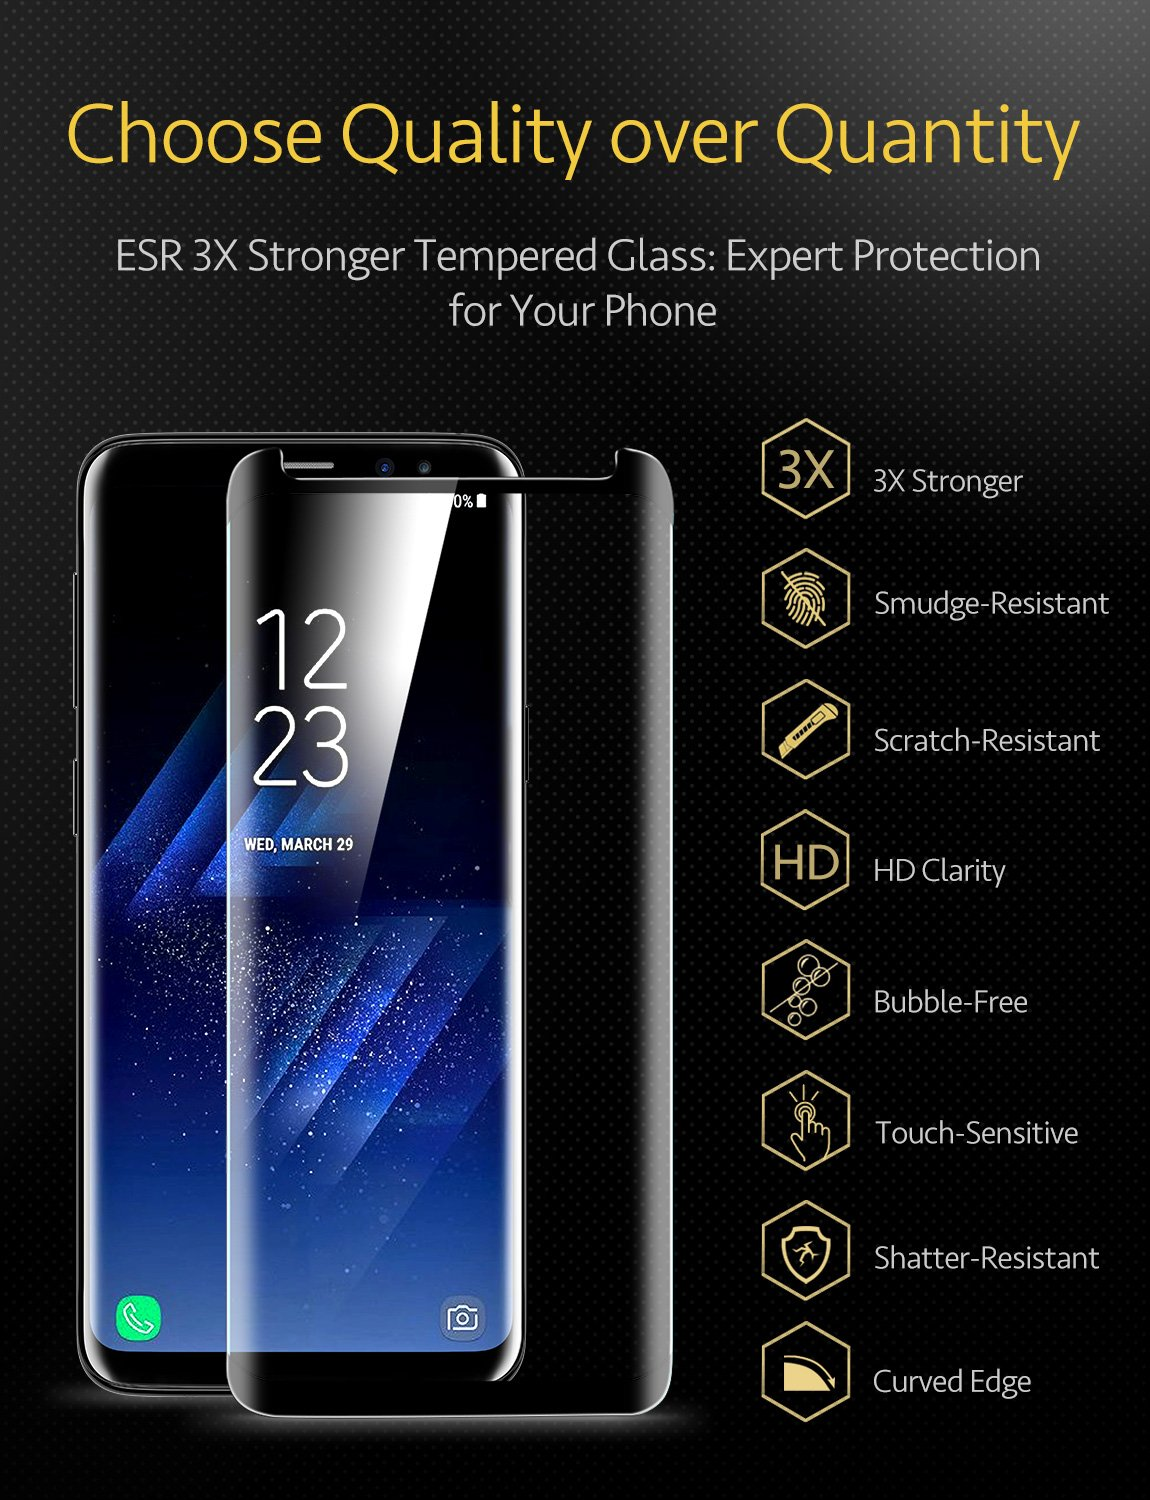 ESR Samsung Galaxy S9 Plus S9+ Screen Protector, (2-Pack) Galaxy S9 Plus Tempered Glass Screen Protector [Force Resistant up to 11 pounds] Case Friendly Samsung Galaxy S9 Plus 2018 Released by ESR (Image #2)